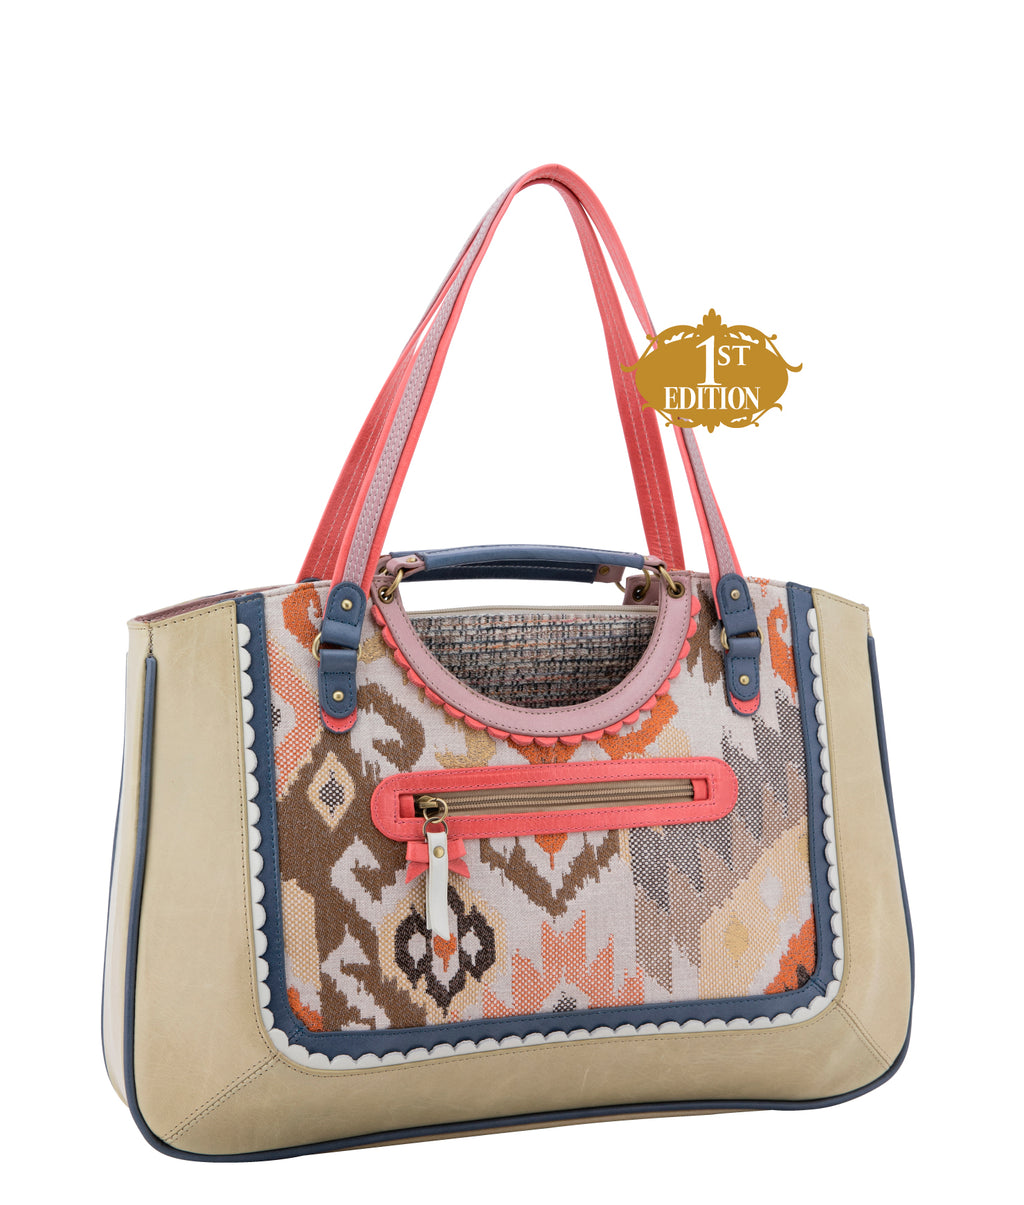 VALERIE Work Tote - Fly Me Away - 1st Edition